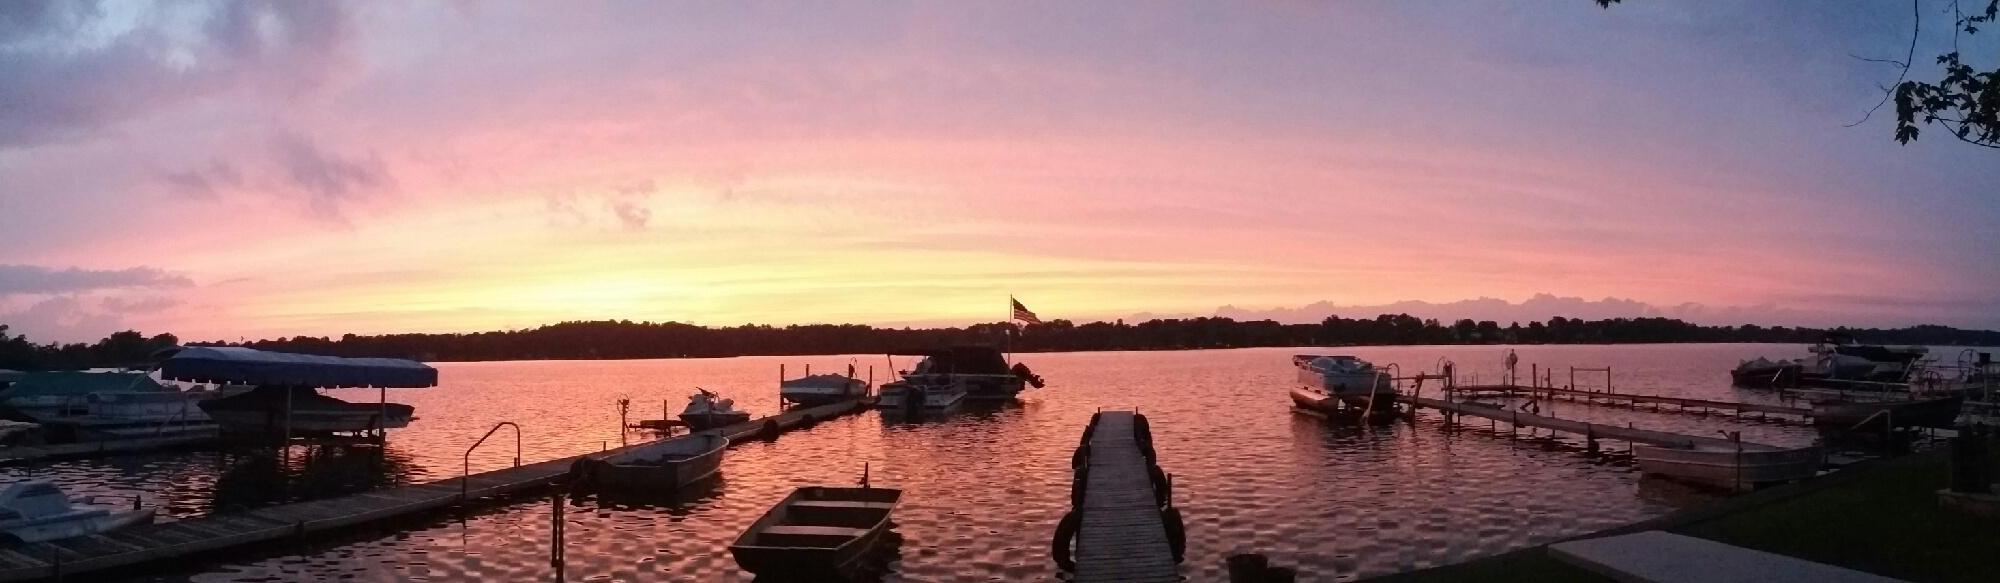 Rhoads Life Coaching - Sunset Lake Docks